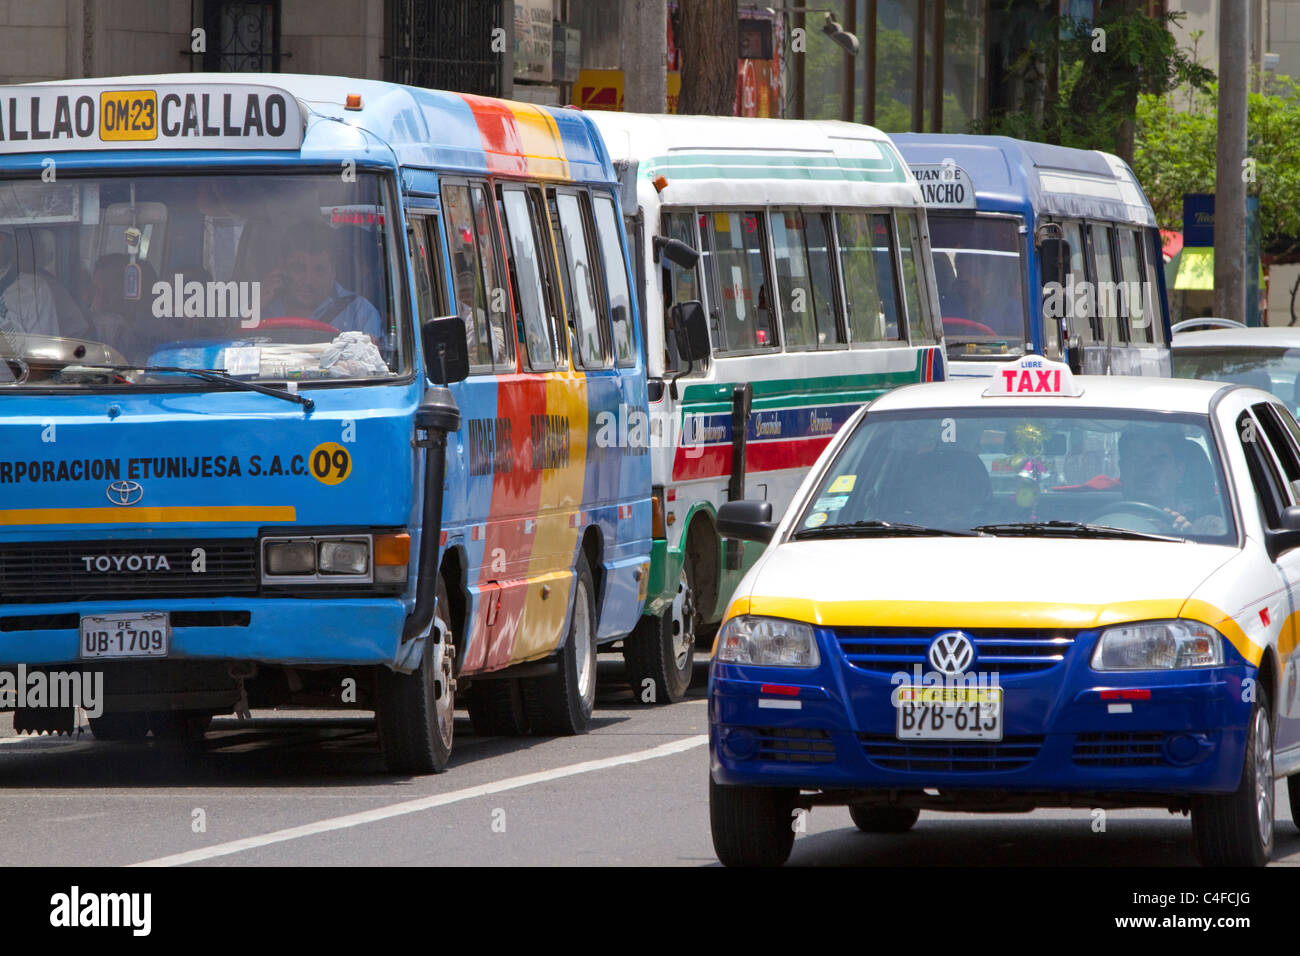 Public transportation buses and taxicab in Lima, Peru. - Stock Image